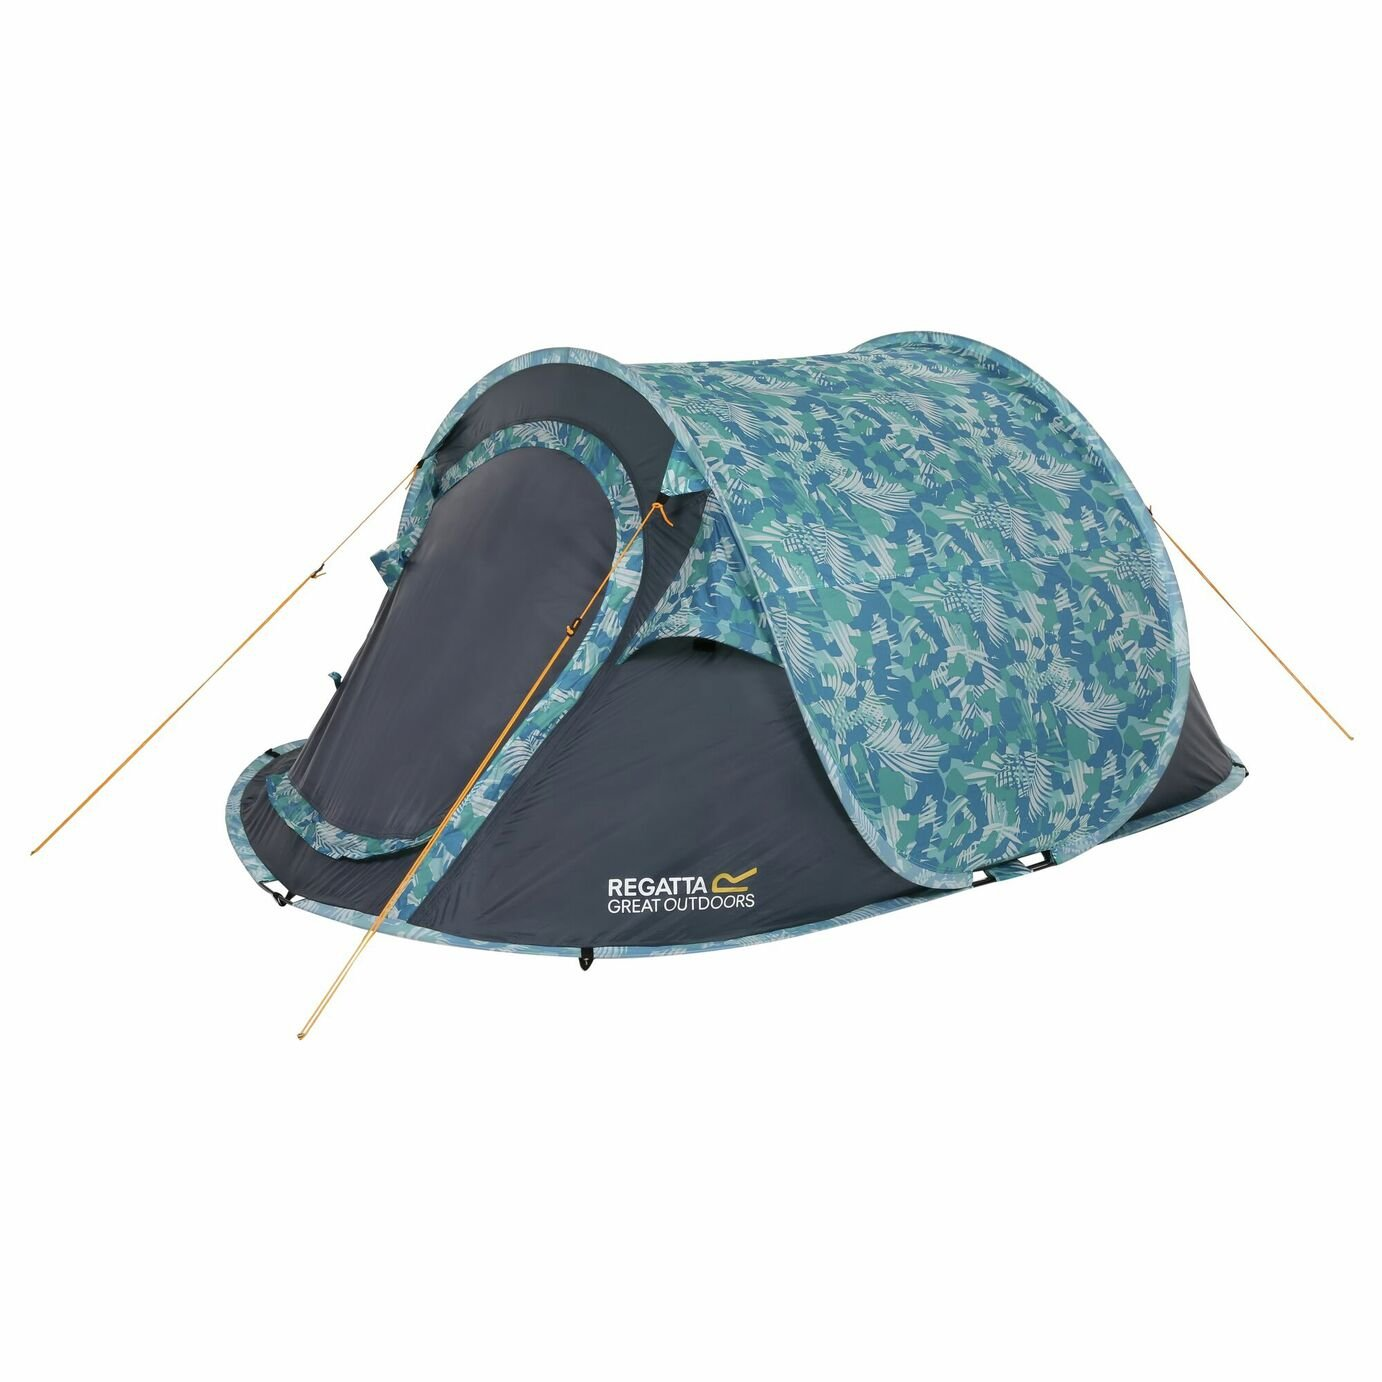 Regatta 2 Man Blue Pop Up Tunnel Tent